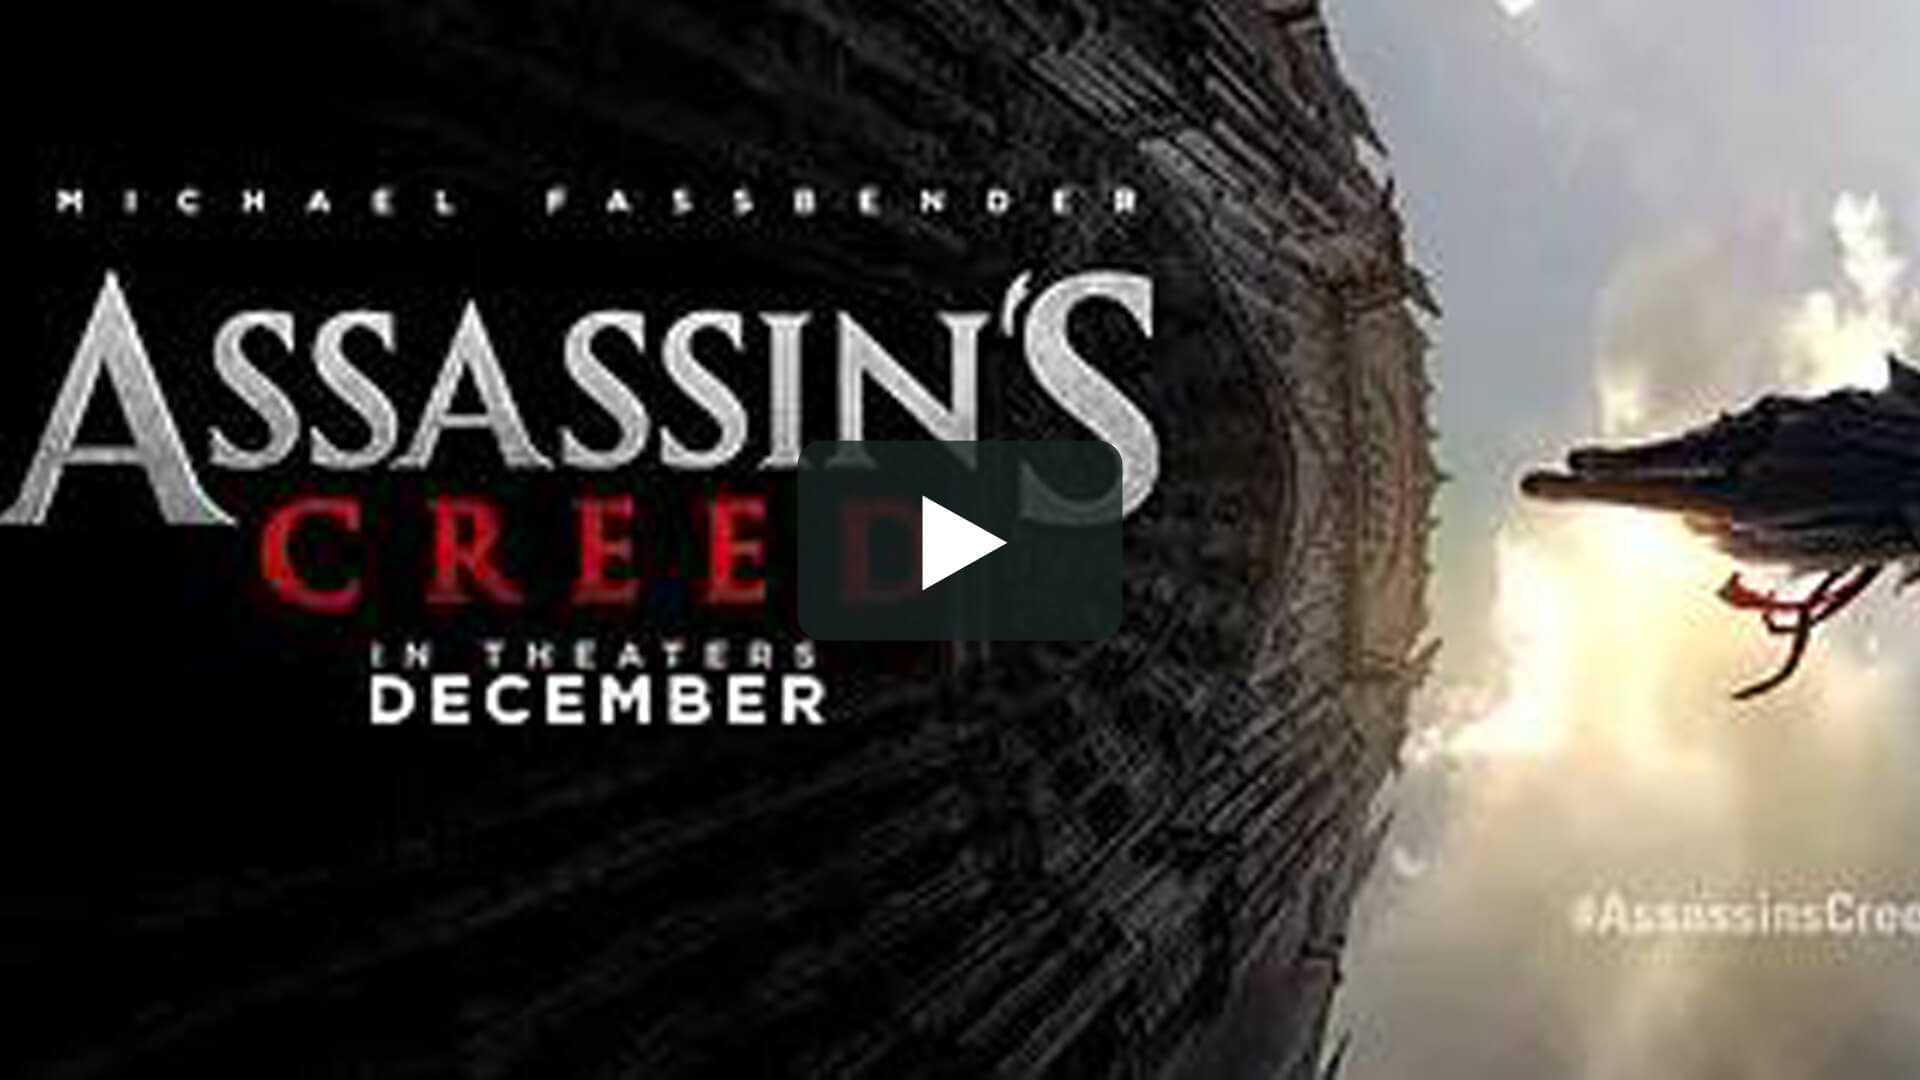 Assassin's.Creed - 刺客教條